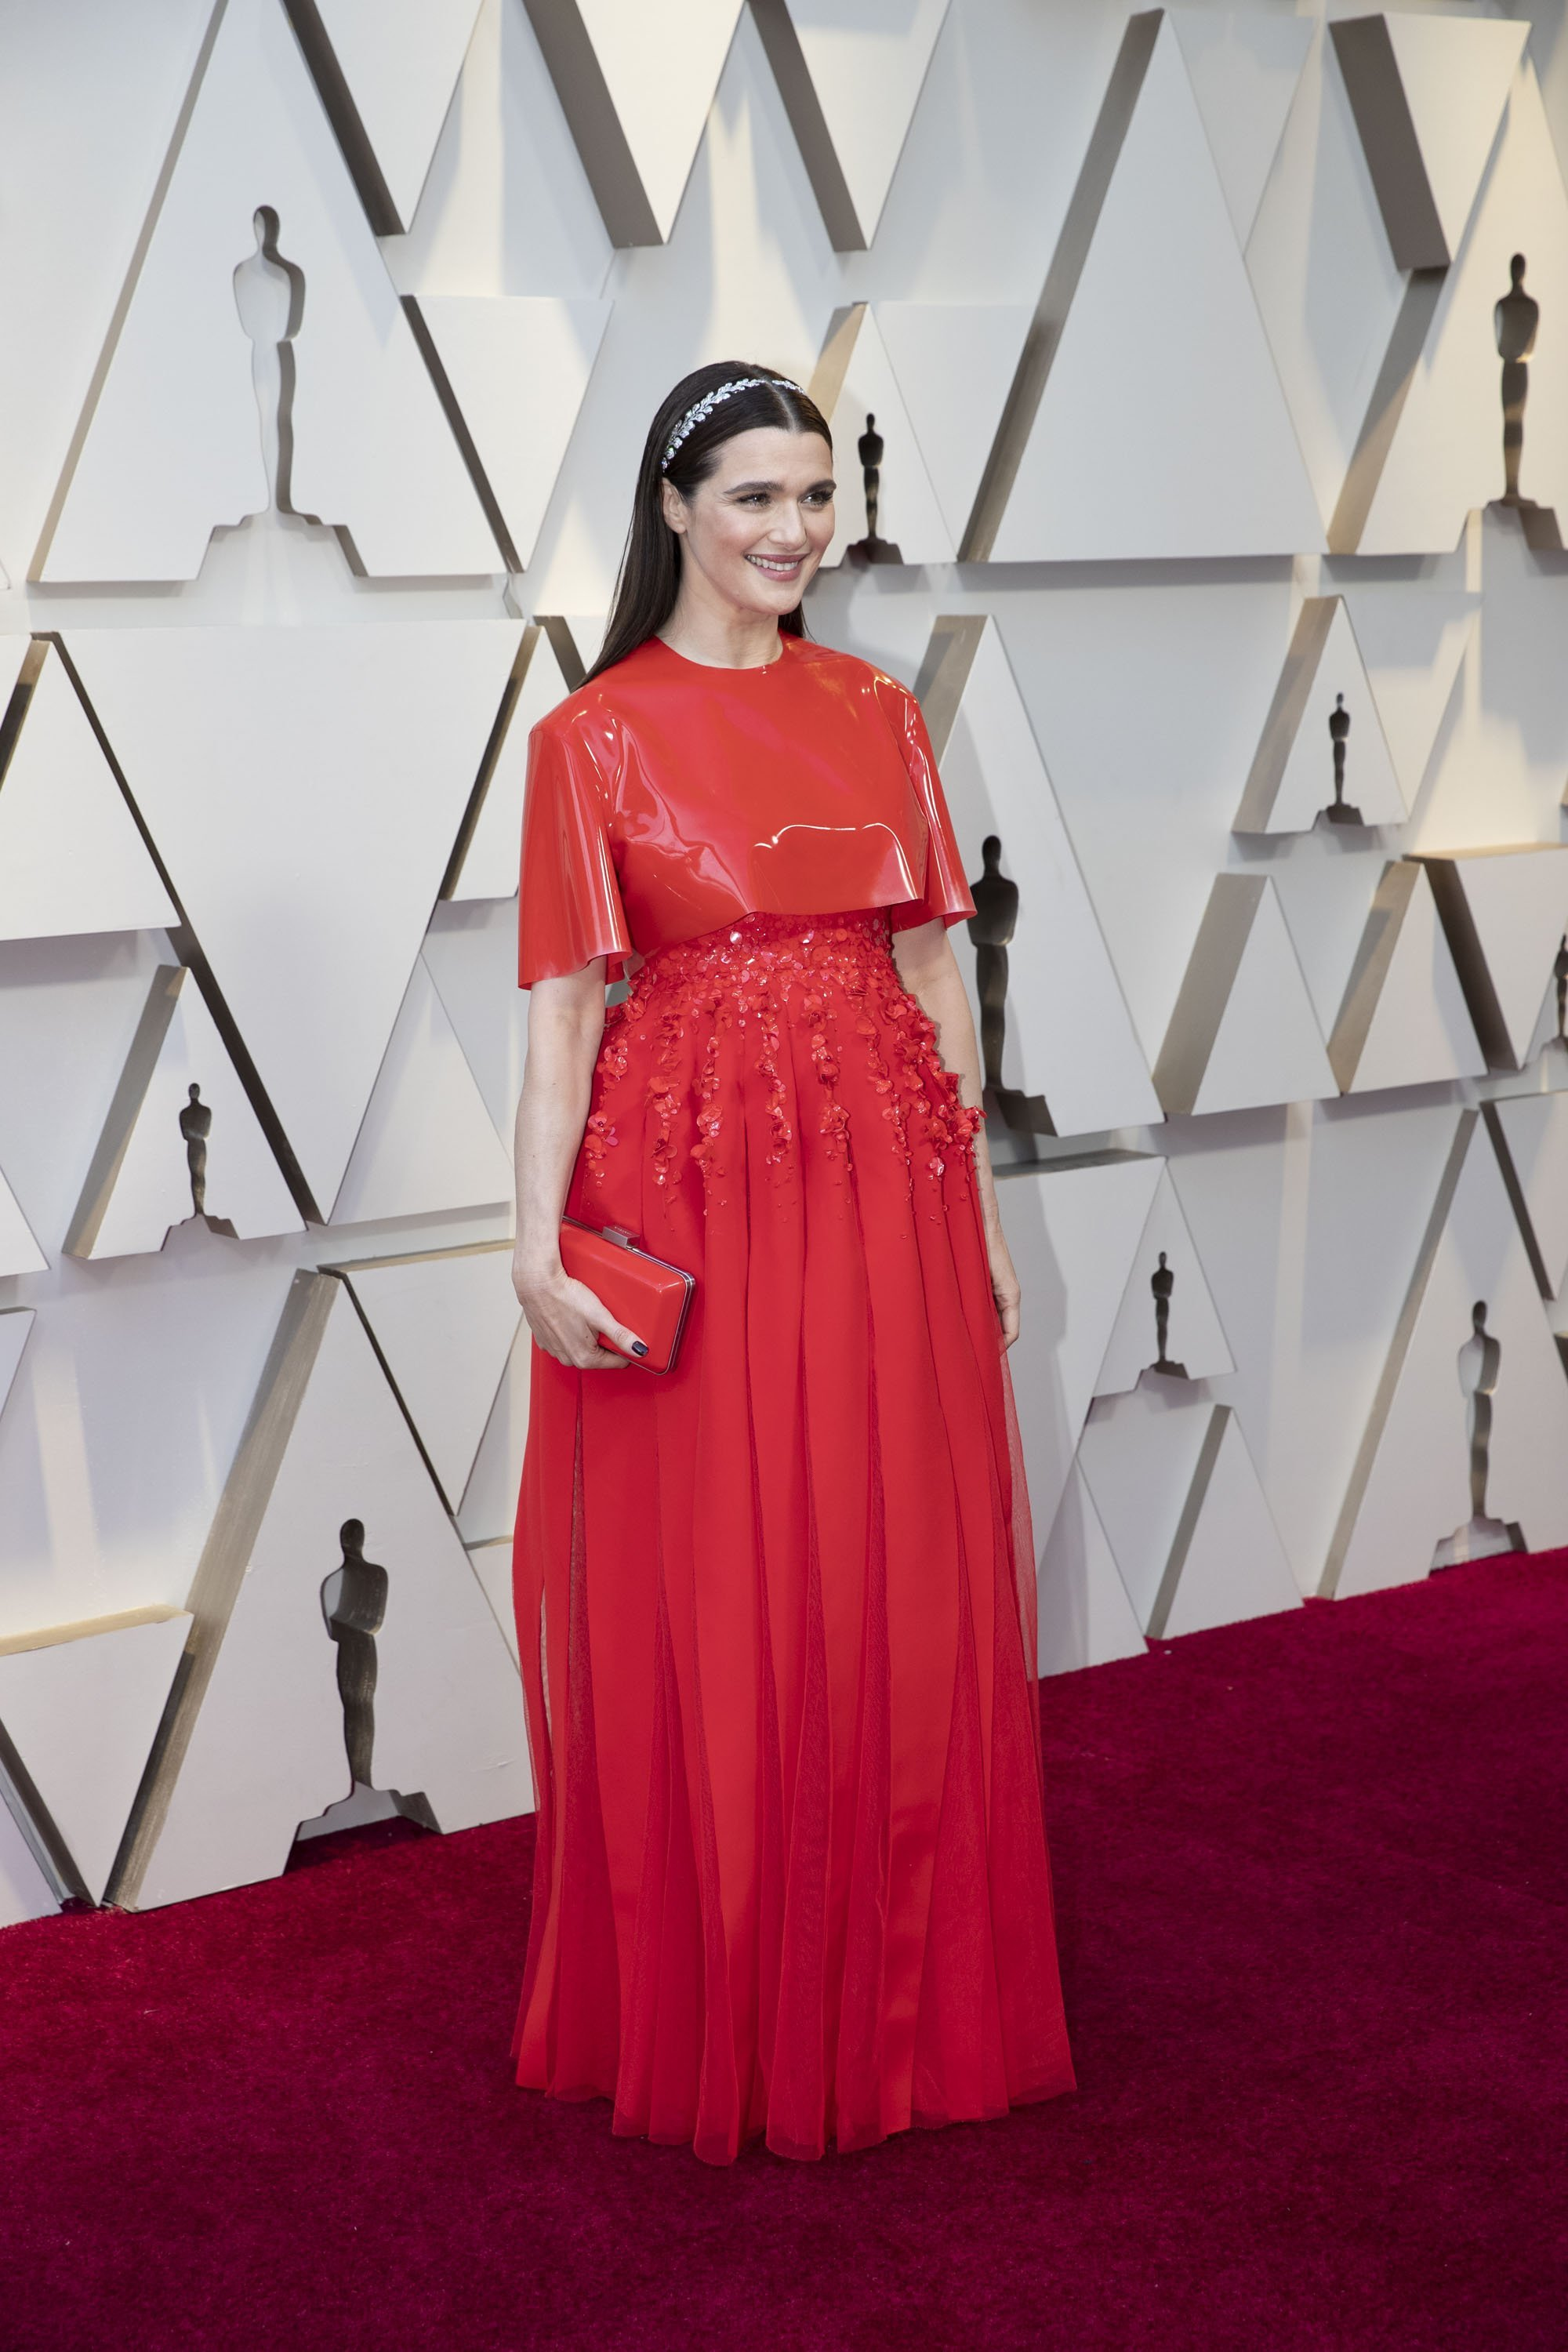 Rachel Weisz: Red Carpet from the The 91st Oscar broadcast on Sunday, Feb. 24, 2019, at the Dolby Theatre.